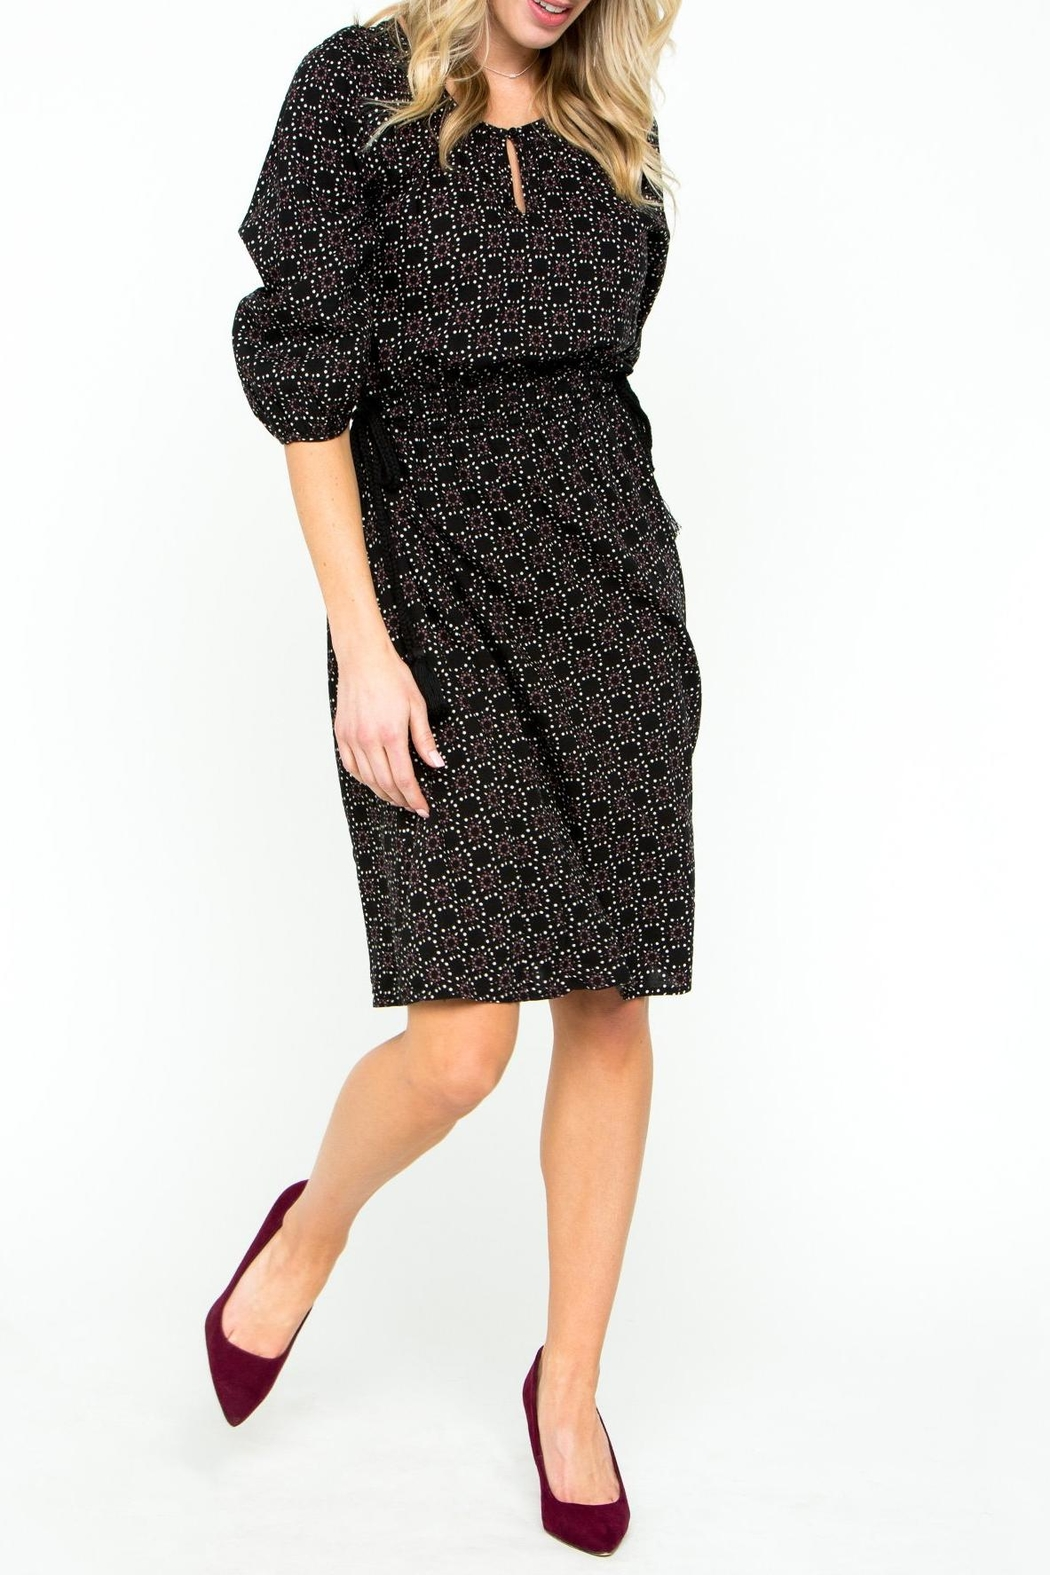 Downeast Basics Holiday Dinner Dress - Front Cropped Image